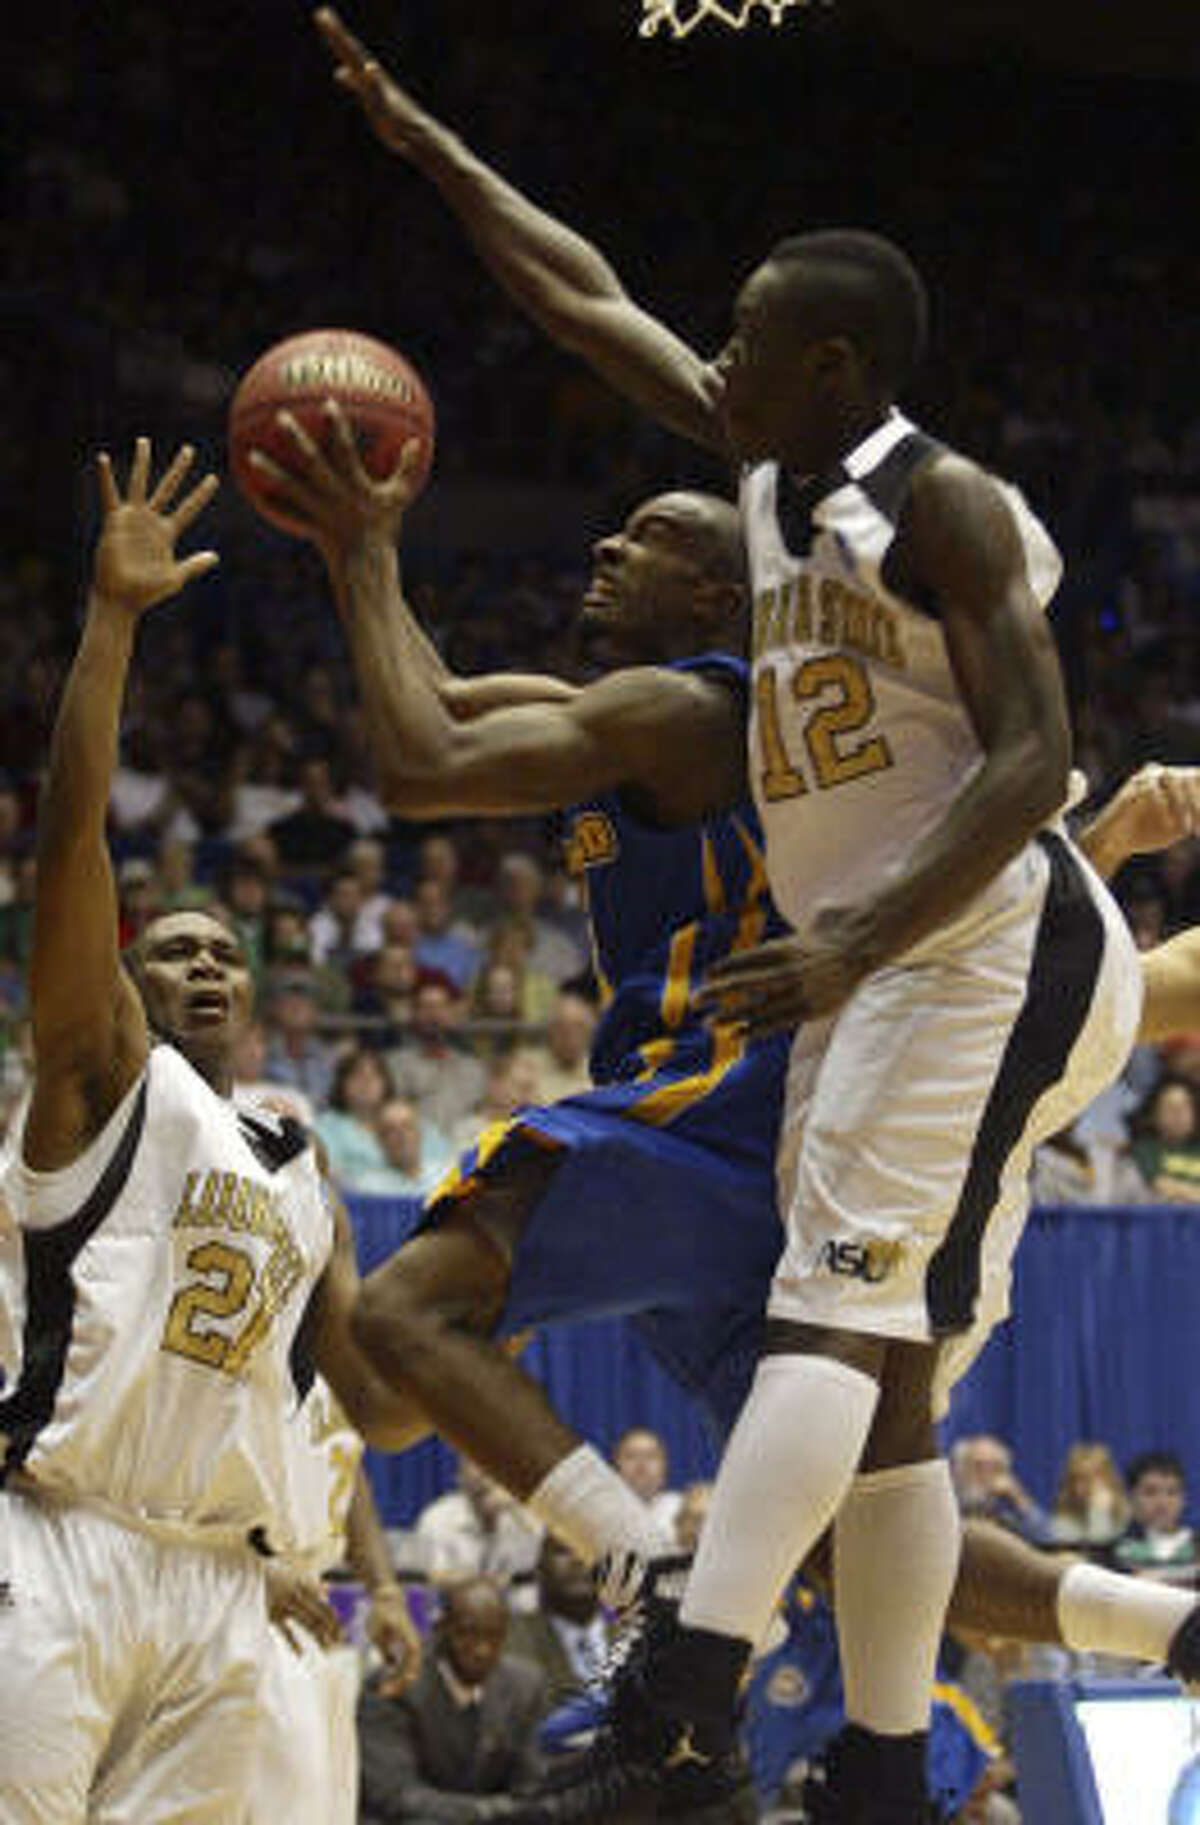 Opening Round Game: Morehead State 58, Alabama State 43. Morehead State guard Brandon Shingles, center, drives between Alabama State defenders Tramaine Butler (21) and Ivory White (12) in the first half.